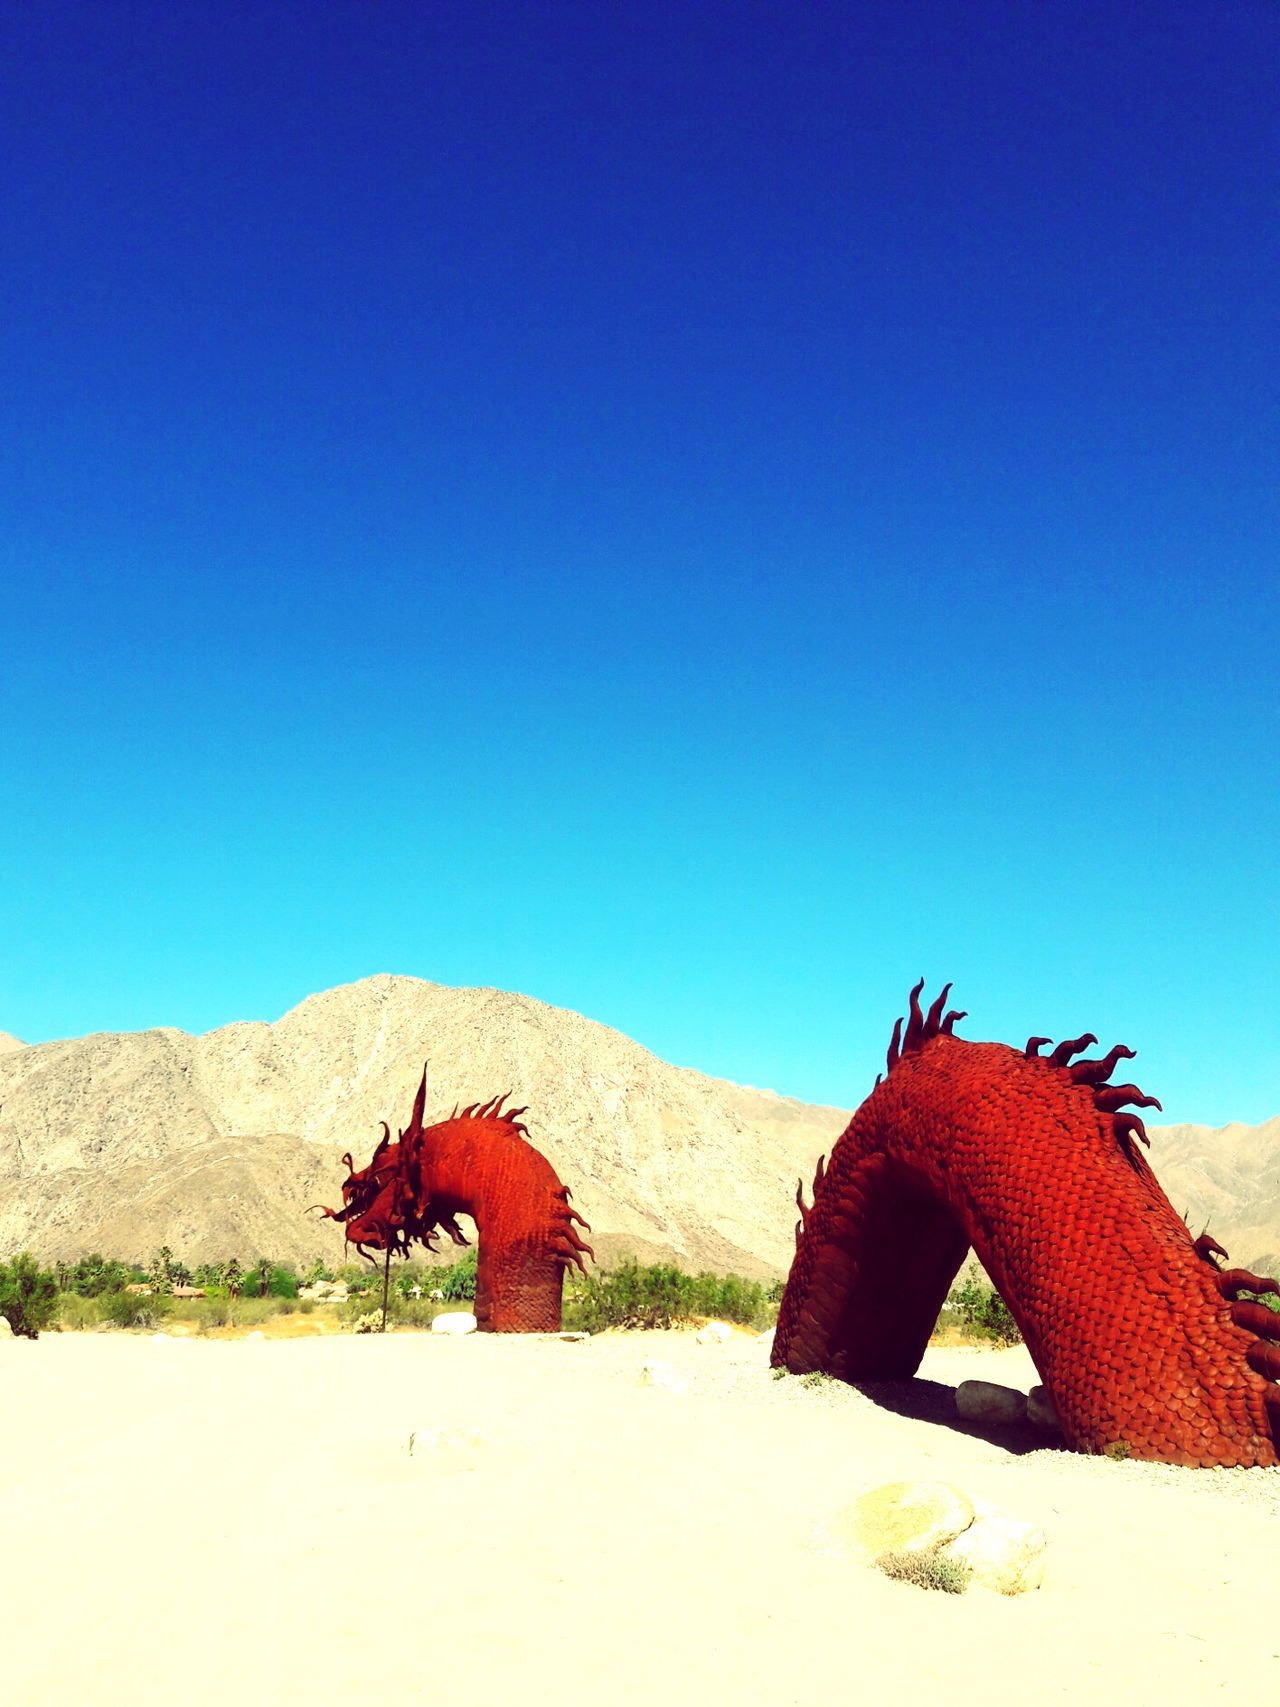 Desert Dragon Continued Clear Sky Blue Copy Space Day No People Nature Red Outdoors Tranquil Scene Sunlight Desert Sand Beauty In Nature Sky Borrego Springs Serpant Metal Art How Long Is It Neverending